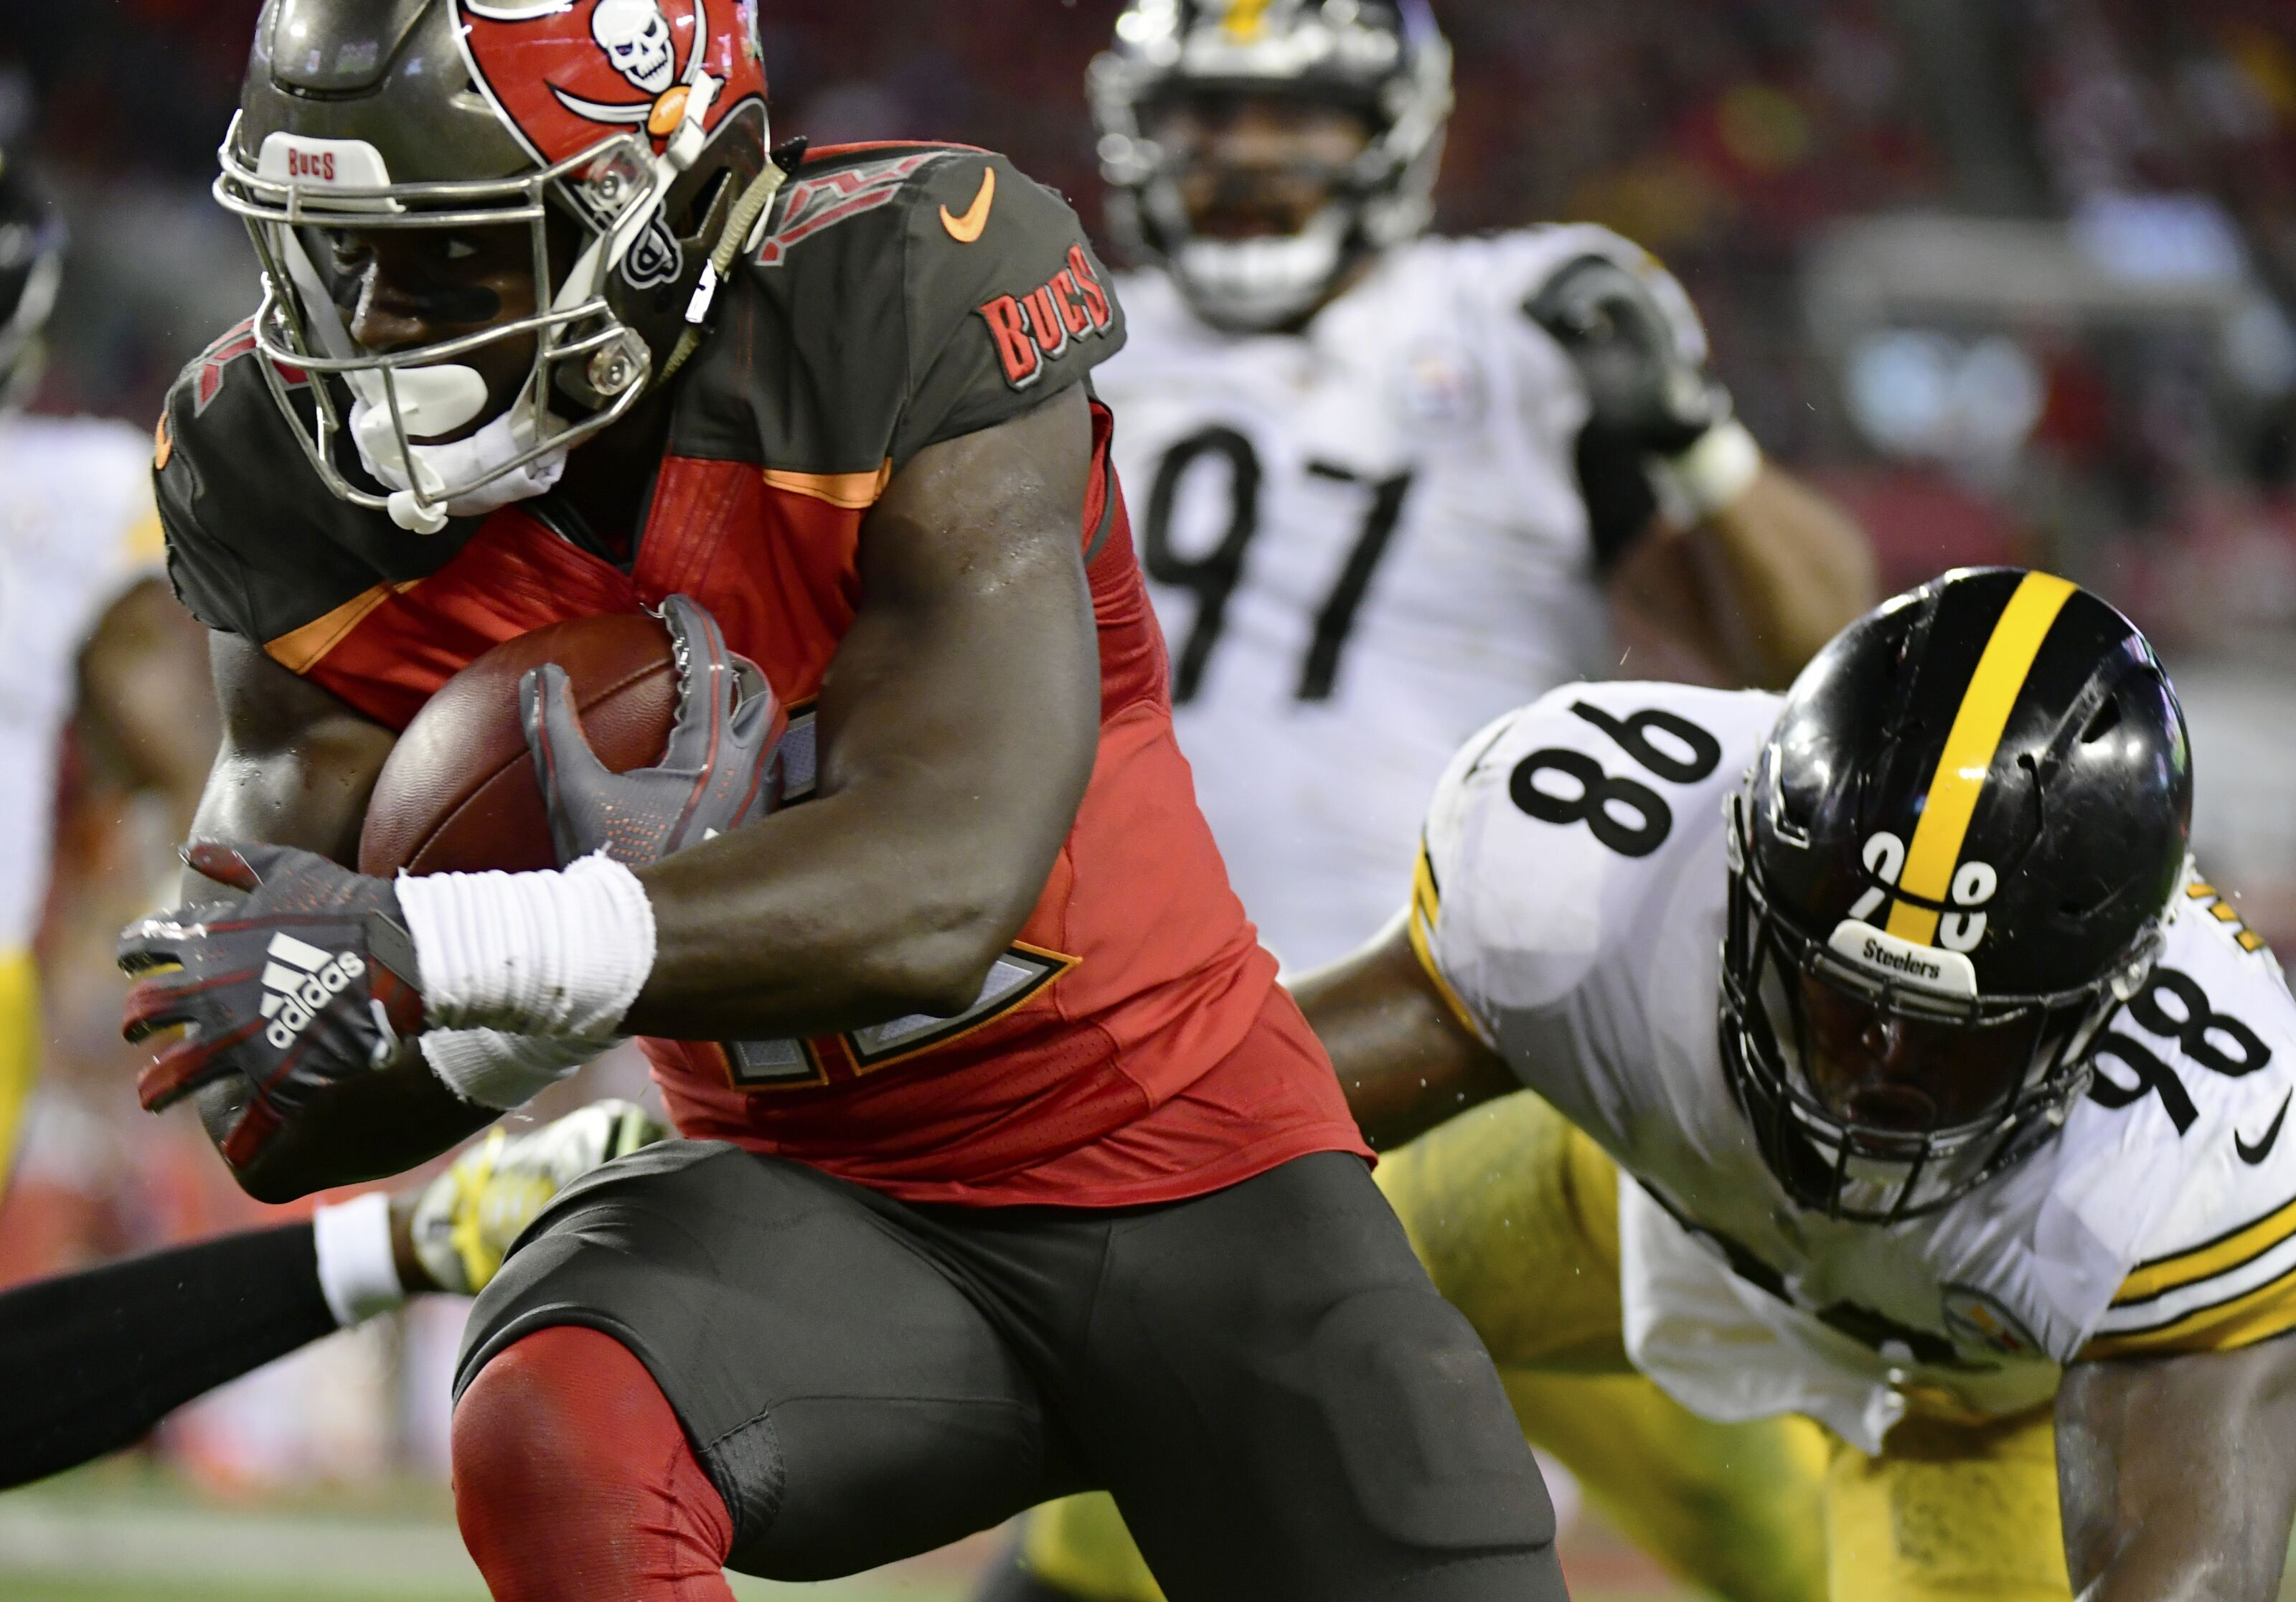 Buccaneers already on a torrid pace to start 2019 season